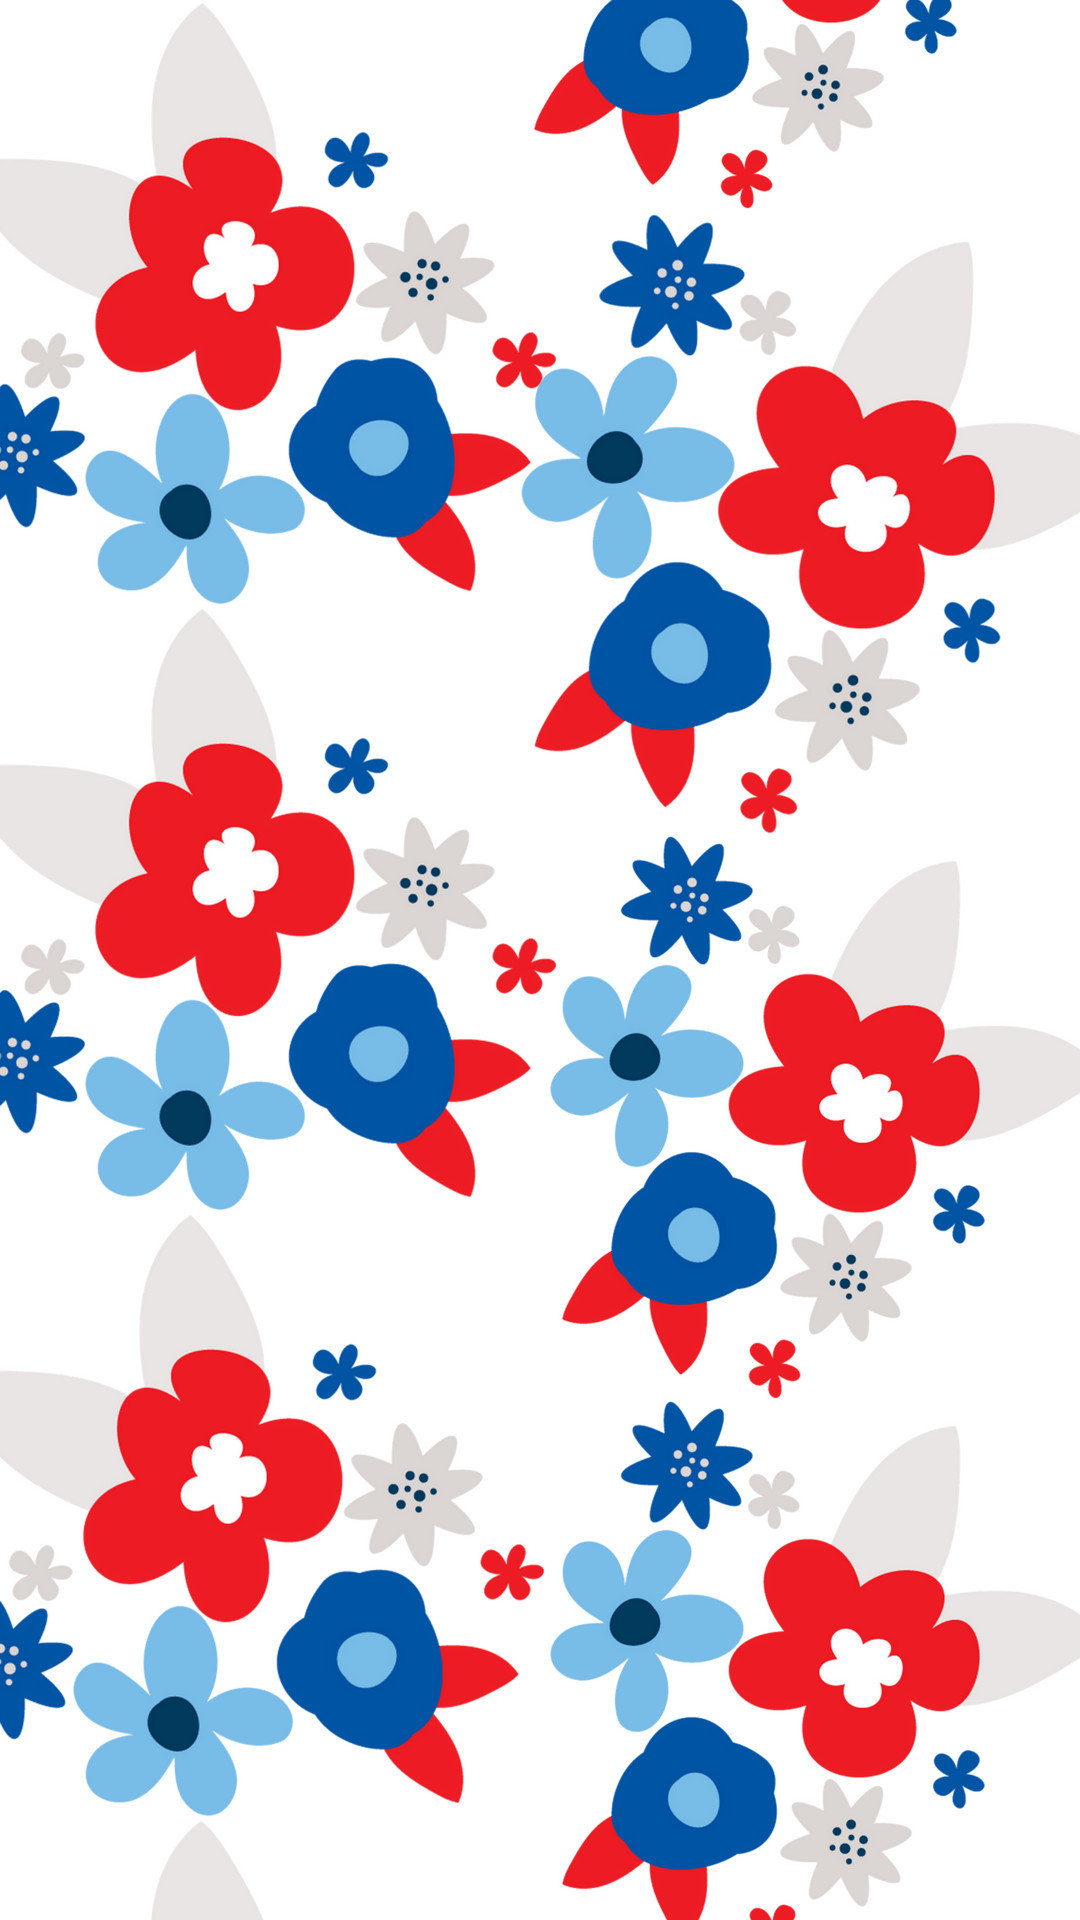 1080x1920 Red White and Blue Floral Smart Phone Wallpaper